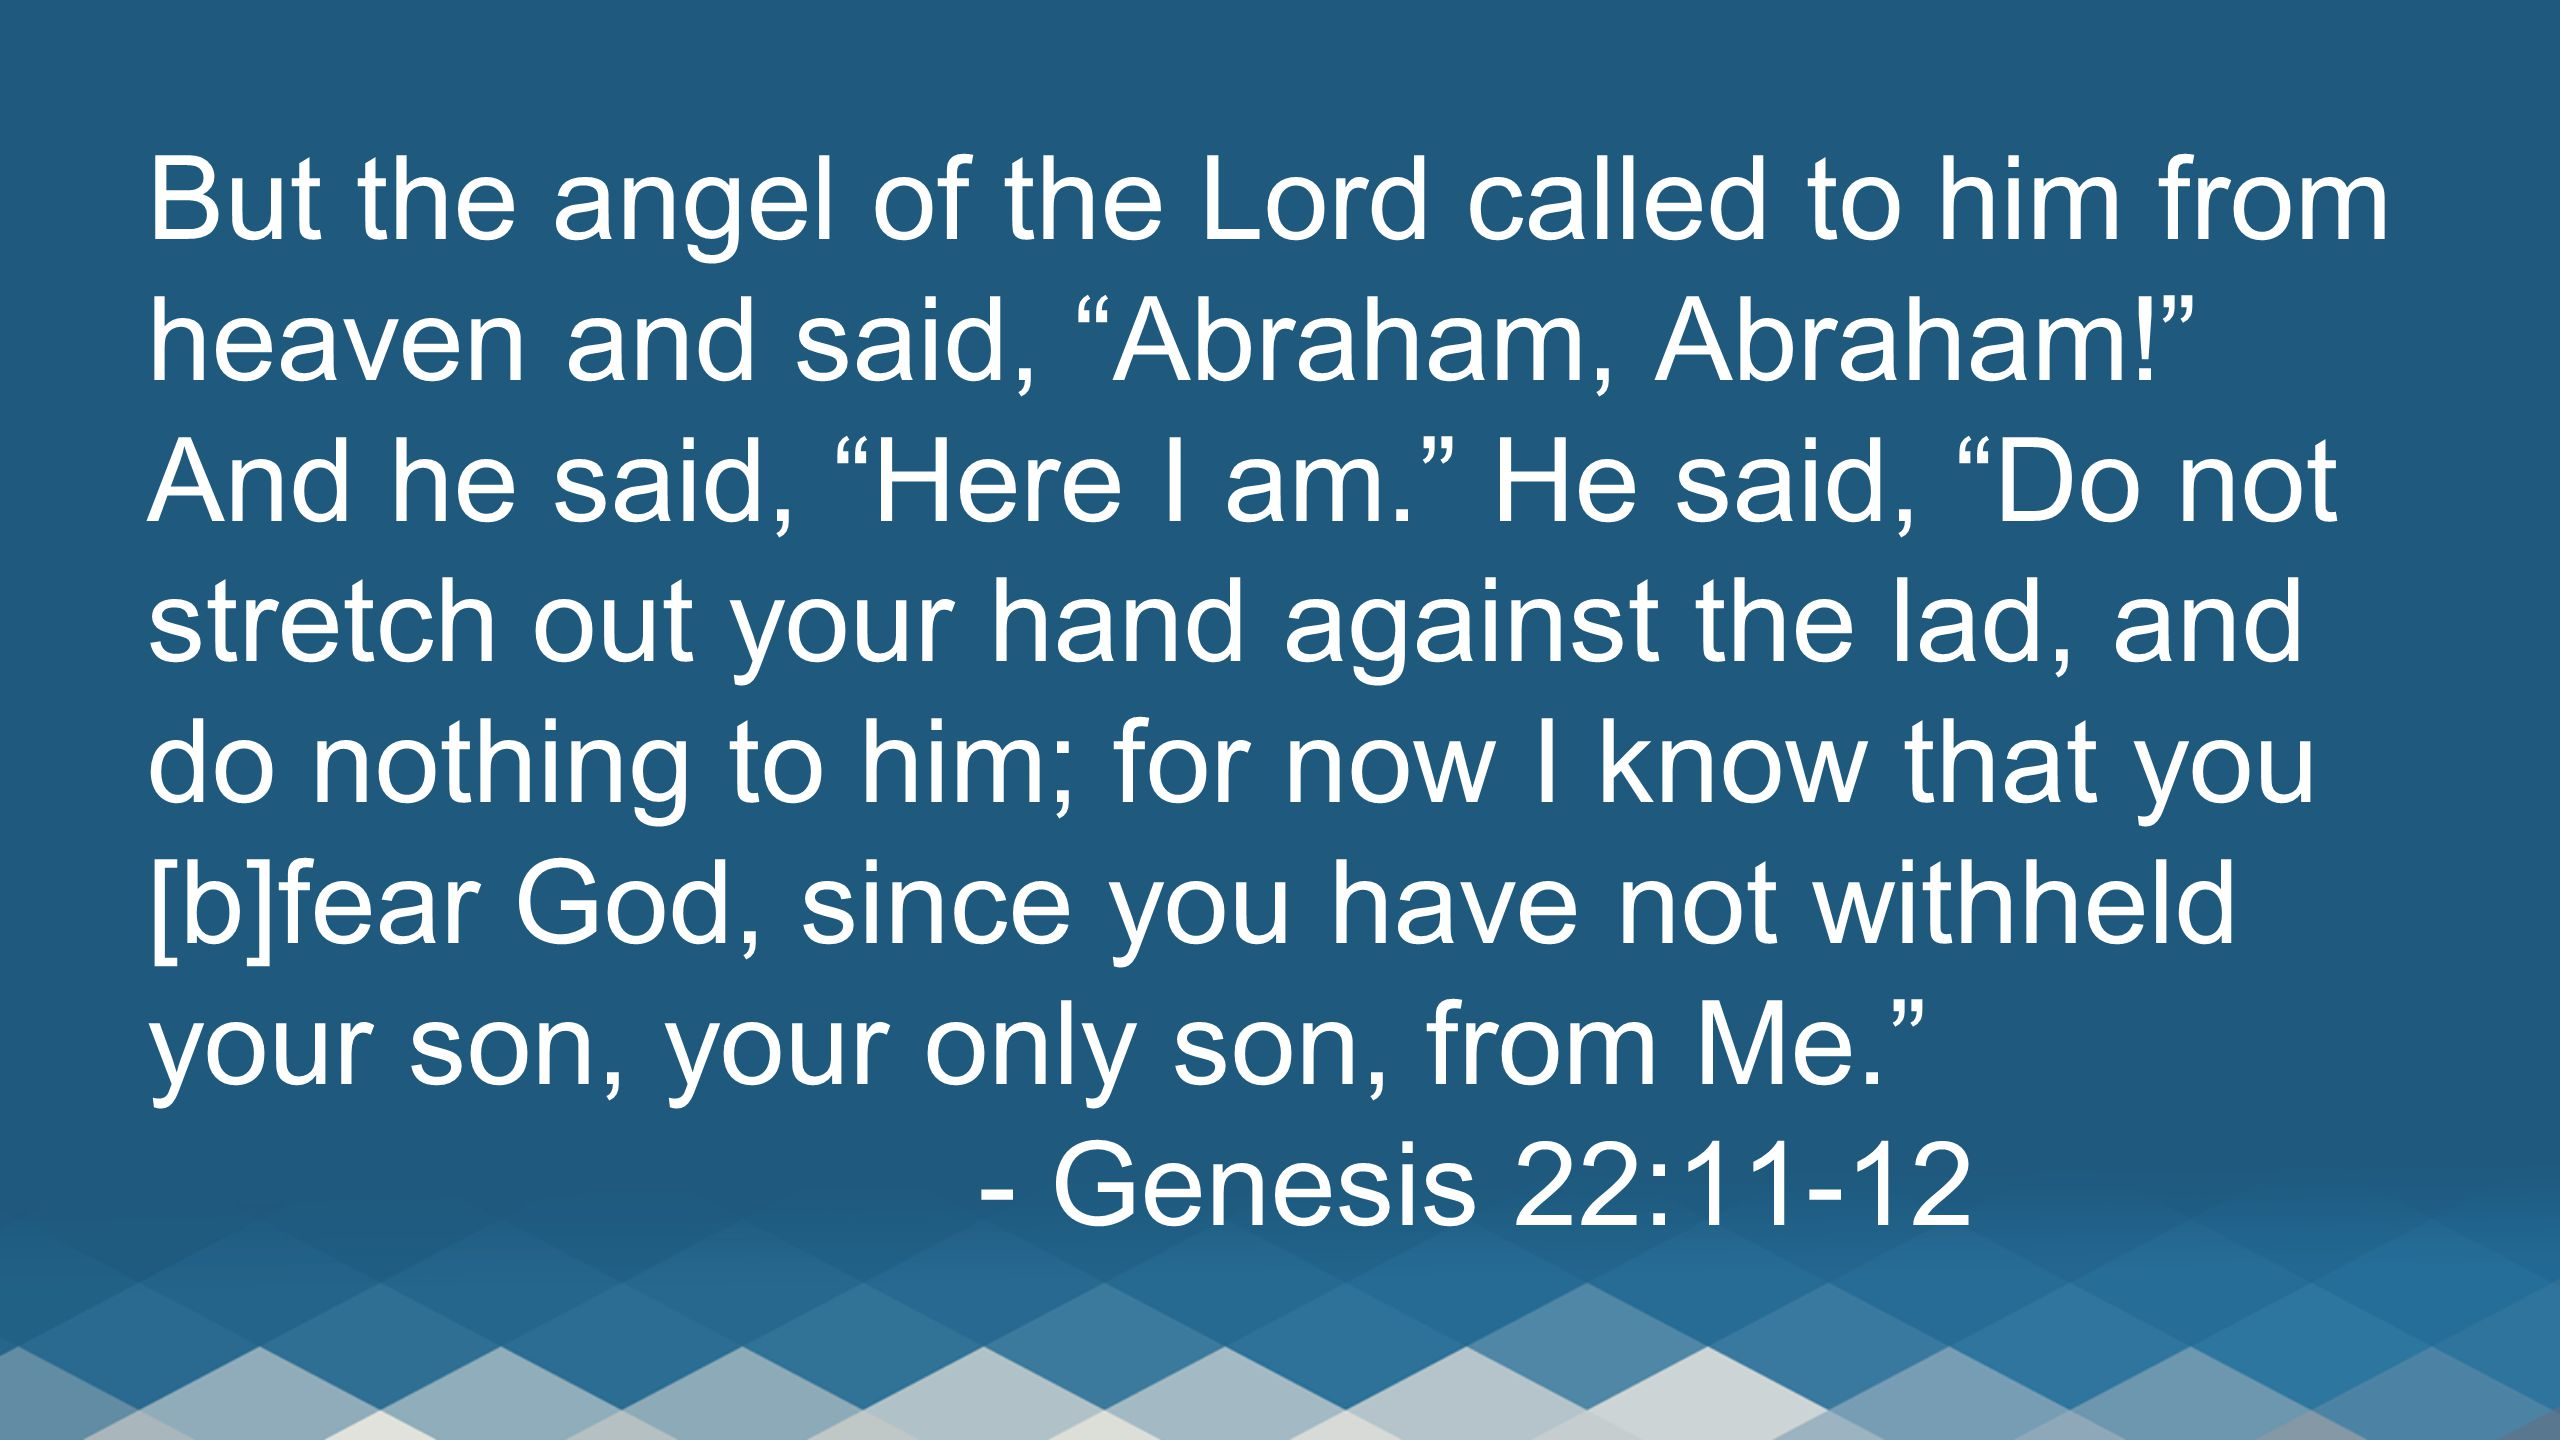 """But the angel of the Lord called to him from heaven and said, """"Abraham, Abraham!"""" And he said, """"Here I am."""" He said, """"Do not stretch out your hand aga"""